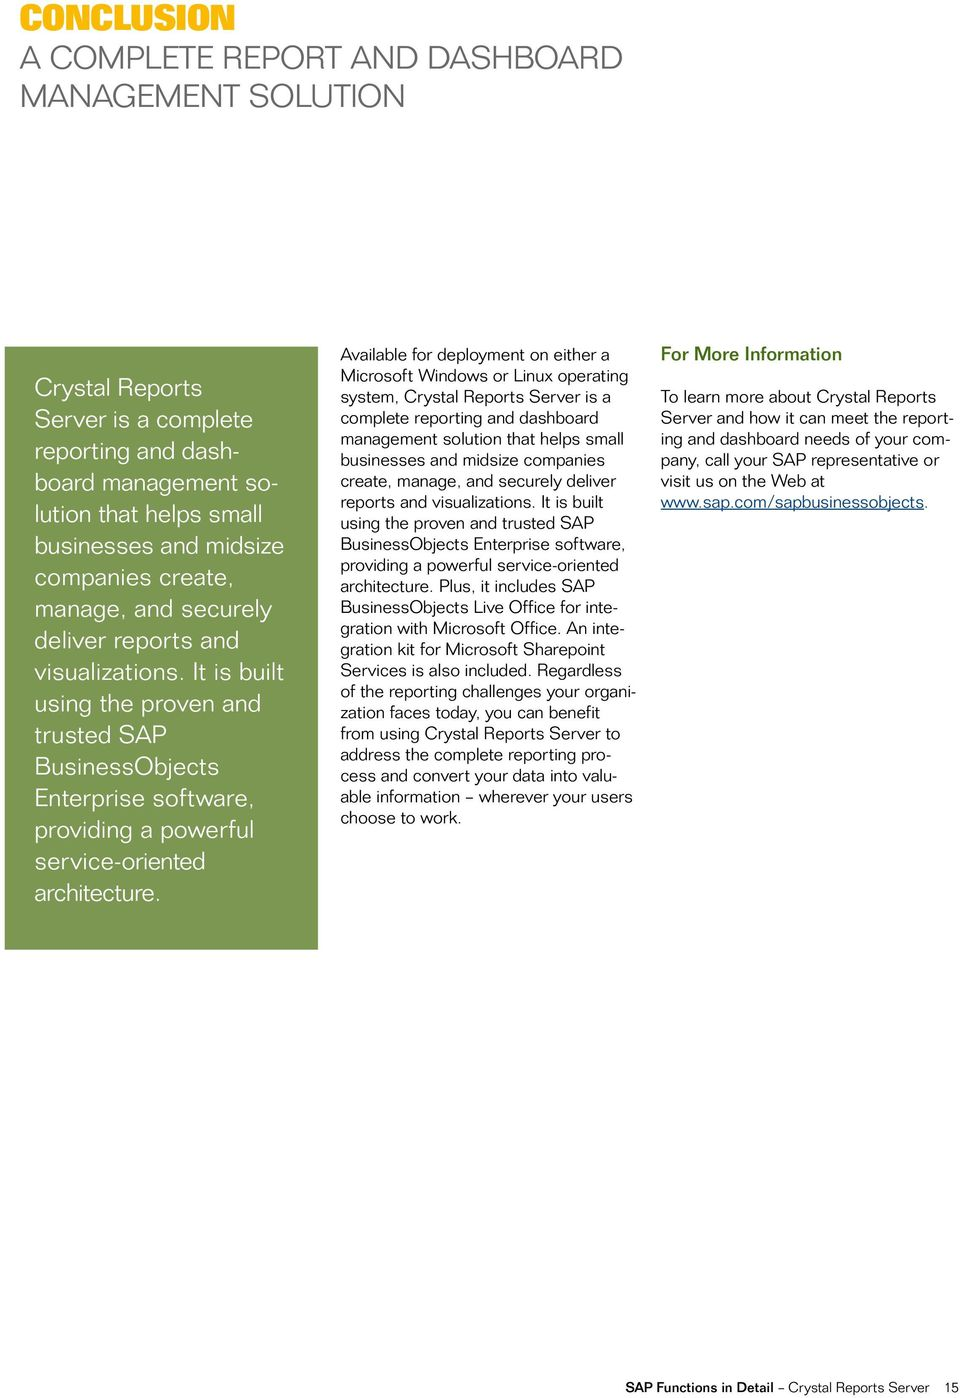 Available for deployment on either a Microsoft Windows or Linux operating system, Crystal Reports Server is a complete reporting and dashboard management solution that helps small businesses and